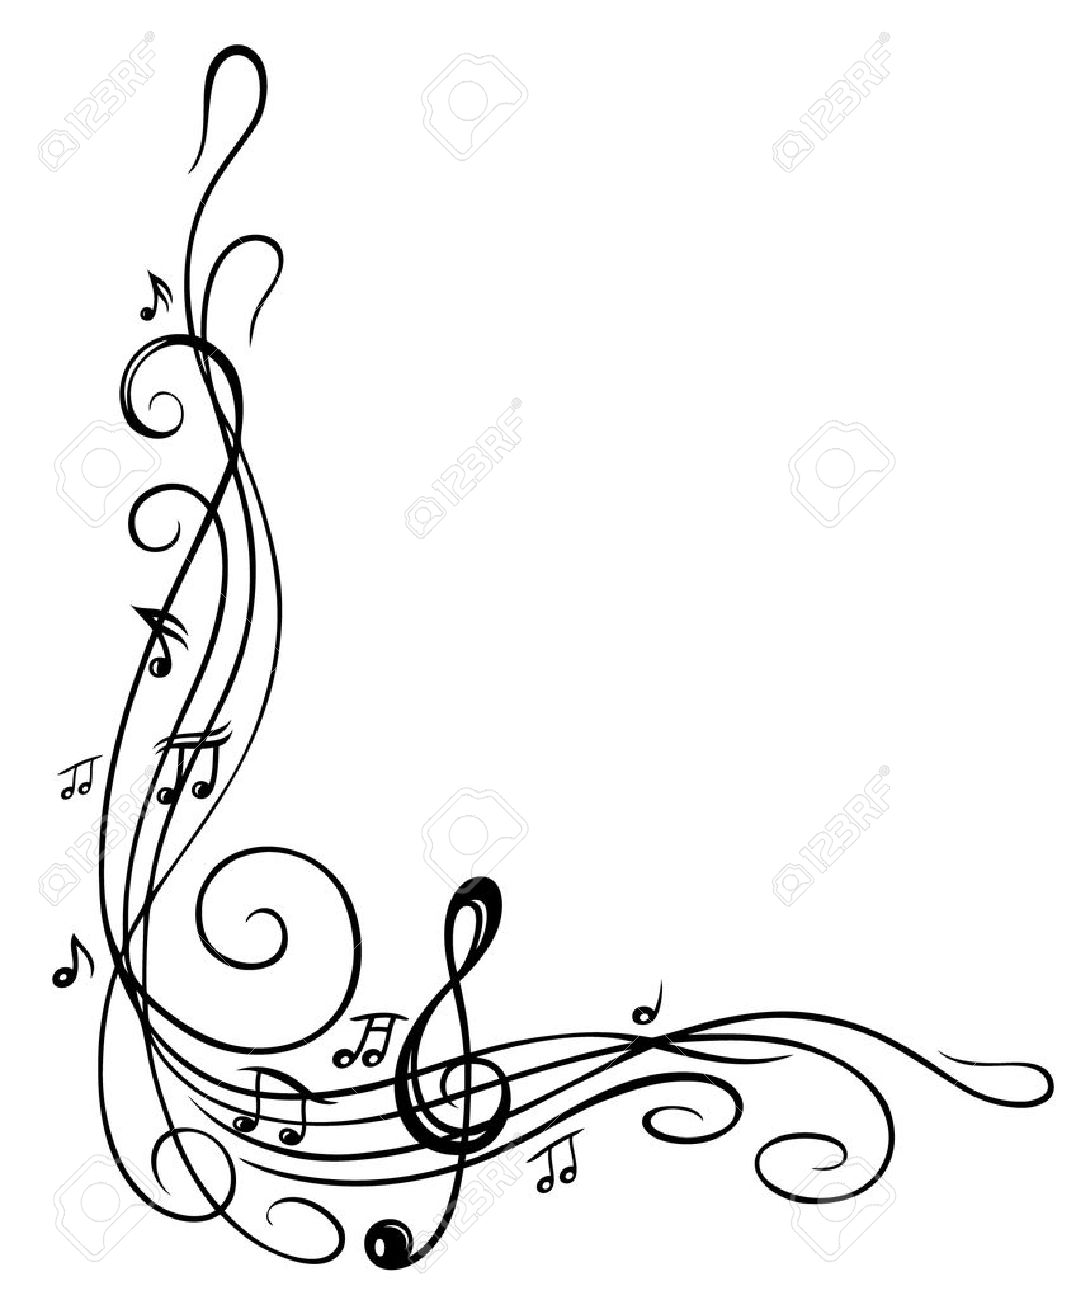 Sheet music border clipart vector black and white download Best Music Note Border #2897 - Clipartion.com vector black and white download